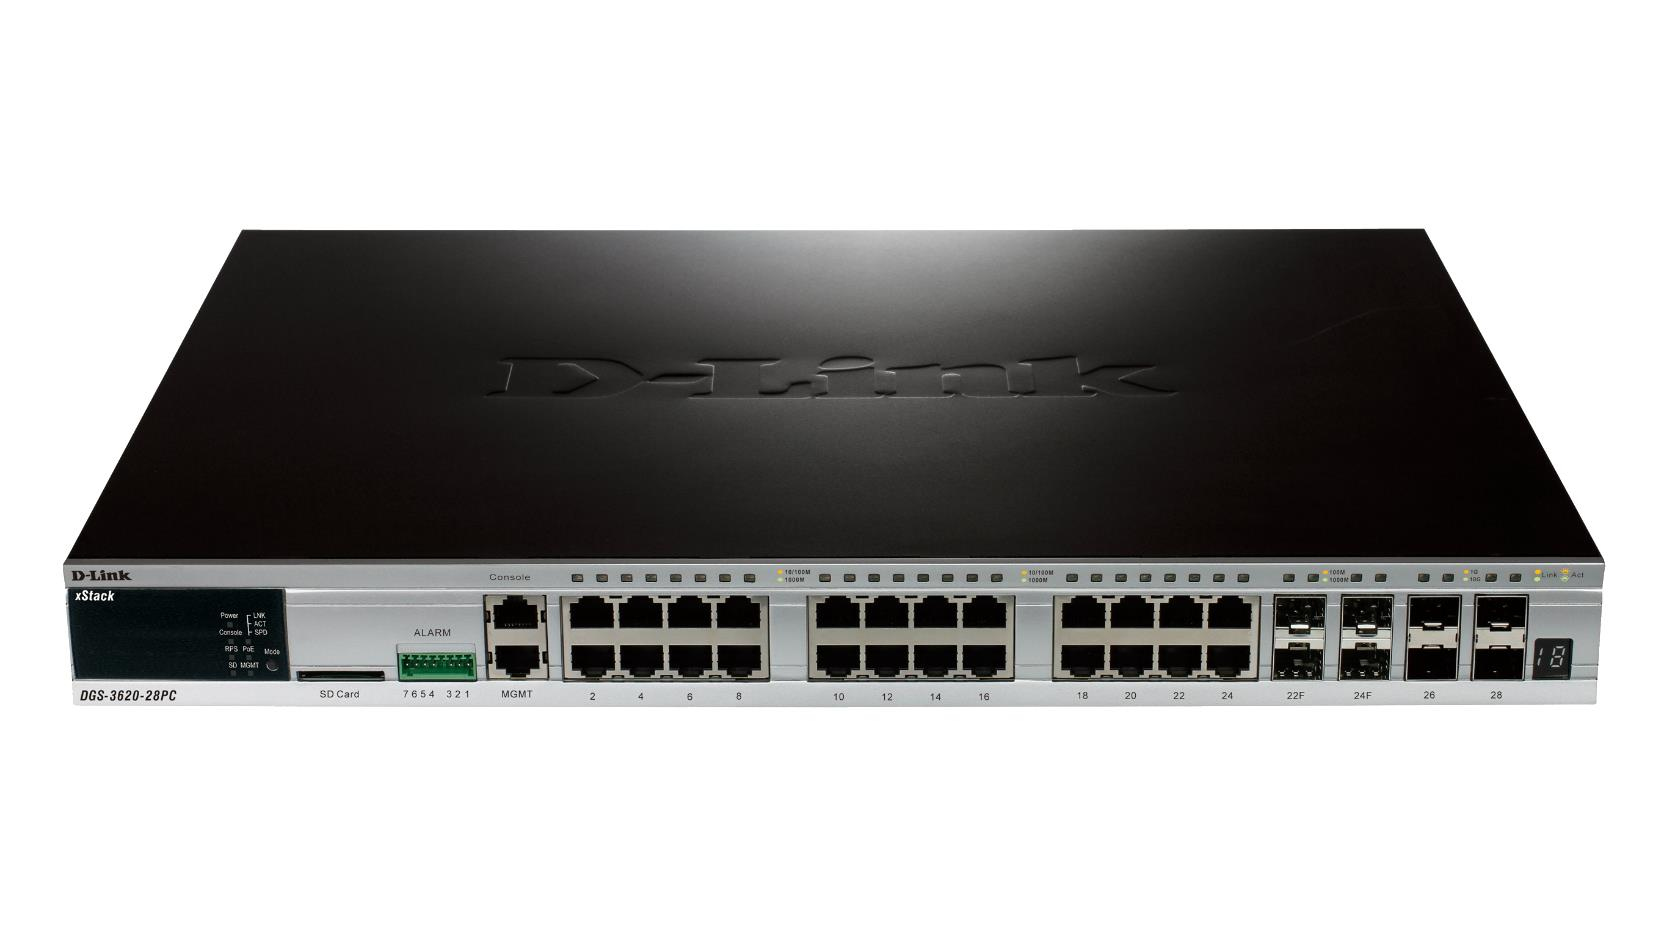 D-Link DGS-3420-26SC xStack L2 Managed Stackable Gigabit Switches